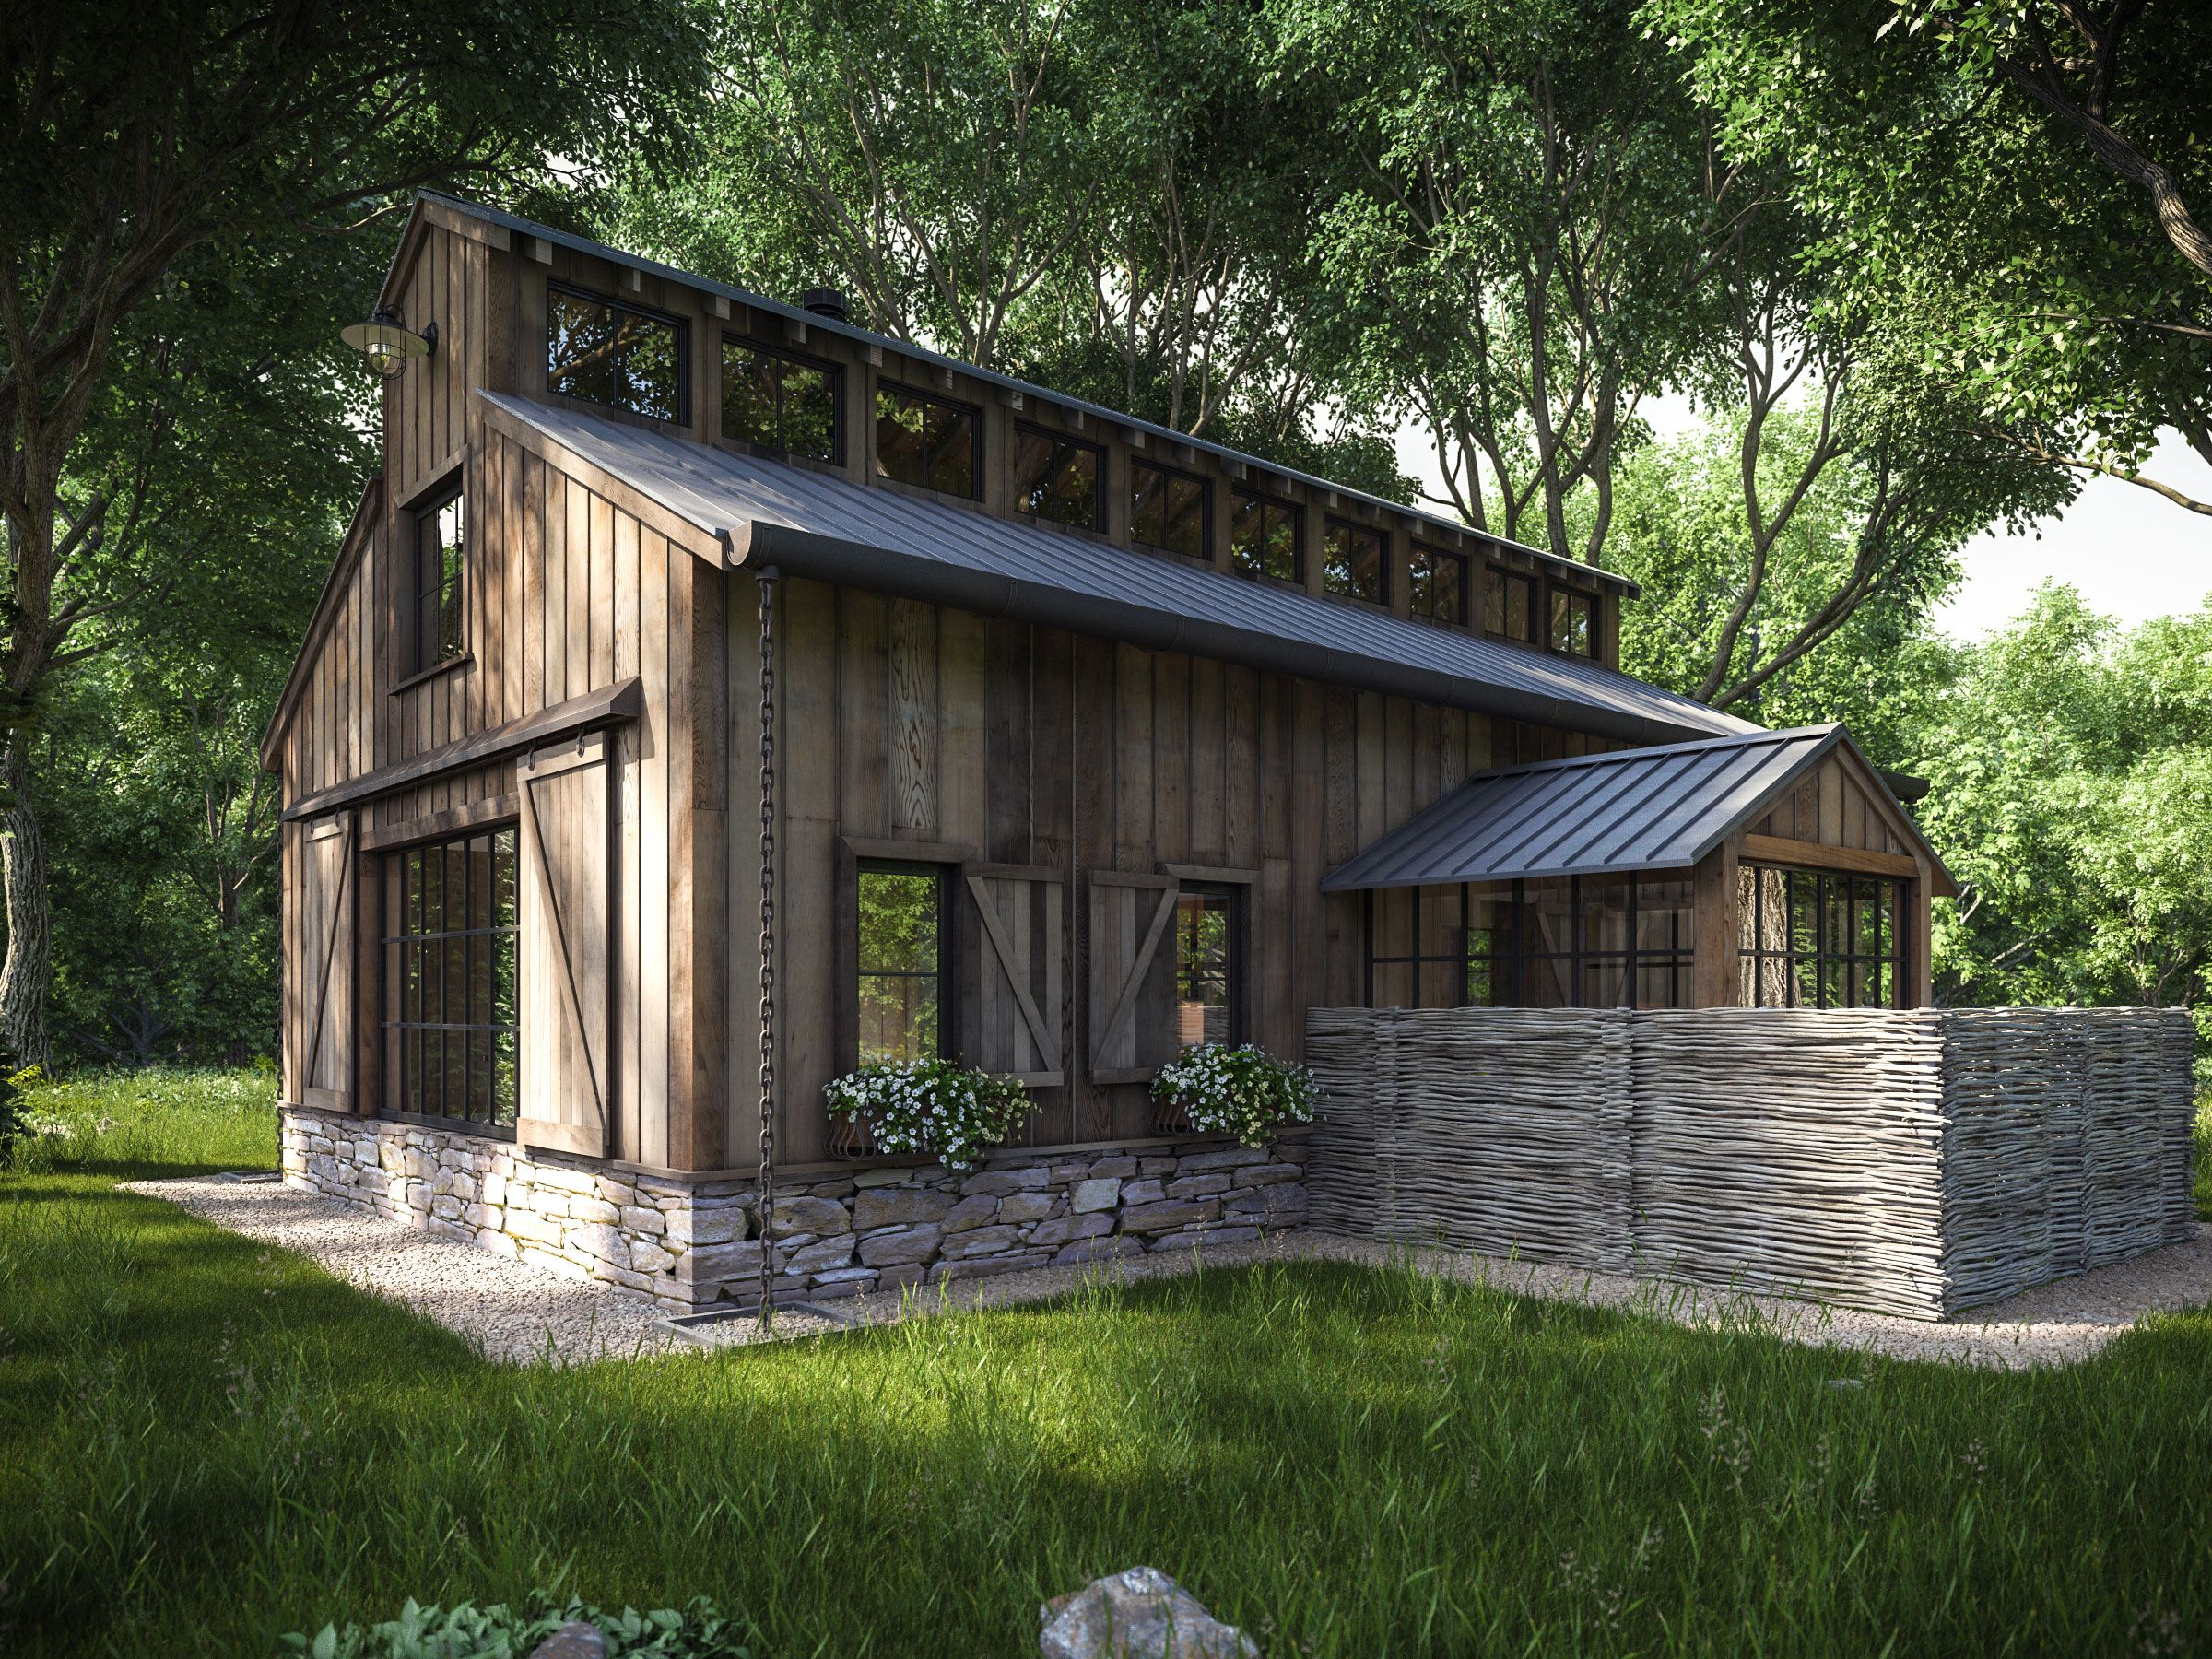 Private Development Cgrendering Com 3d Architecture Rendering Interior Exterior Product Barn Style House Modern Architecture Building Barn House Plans